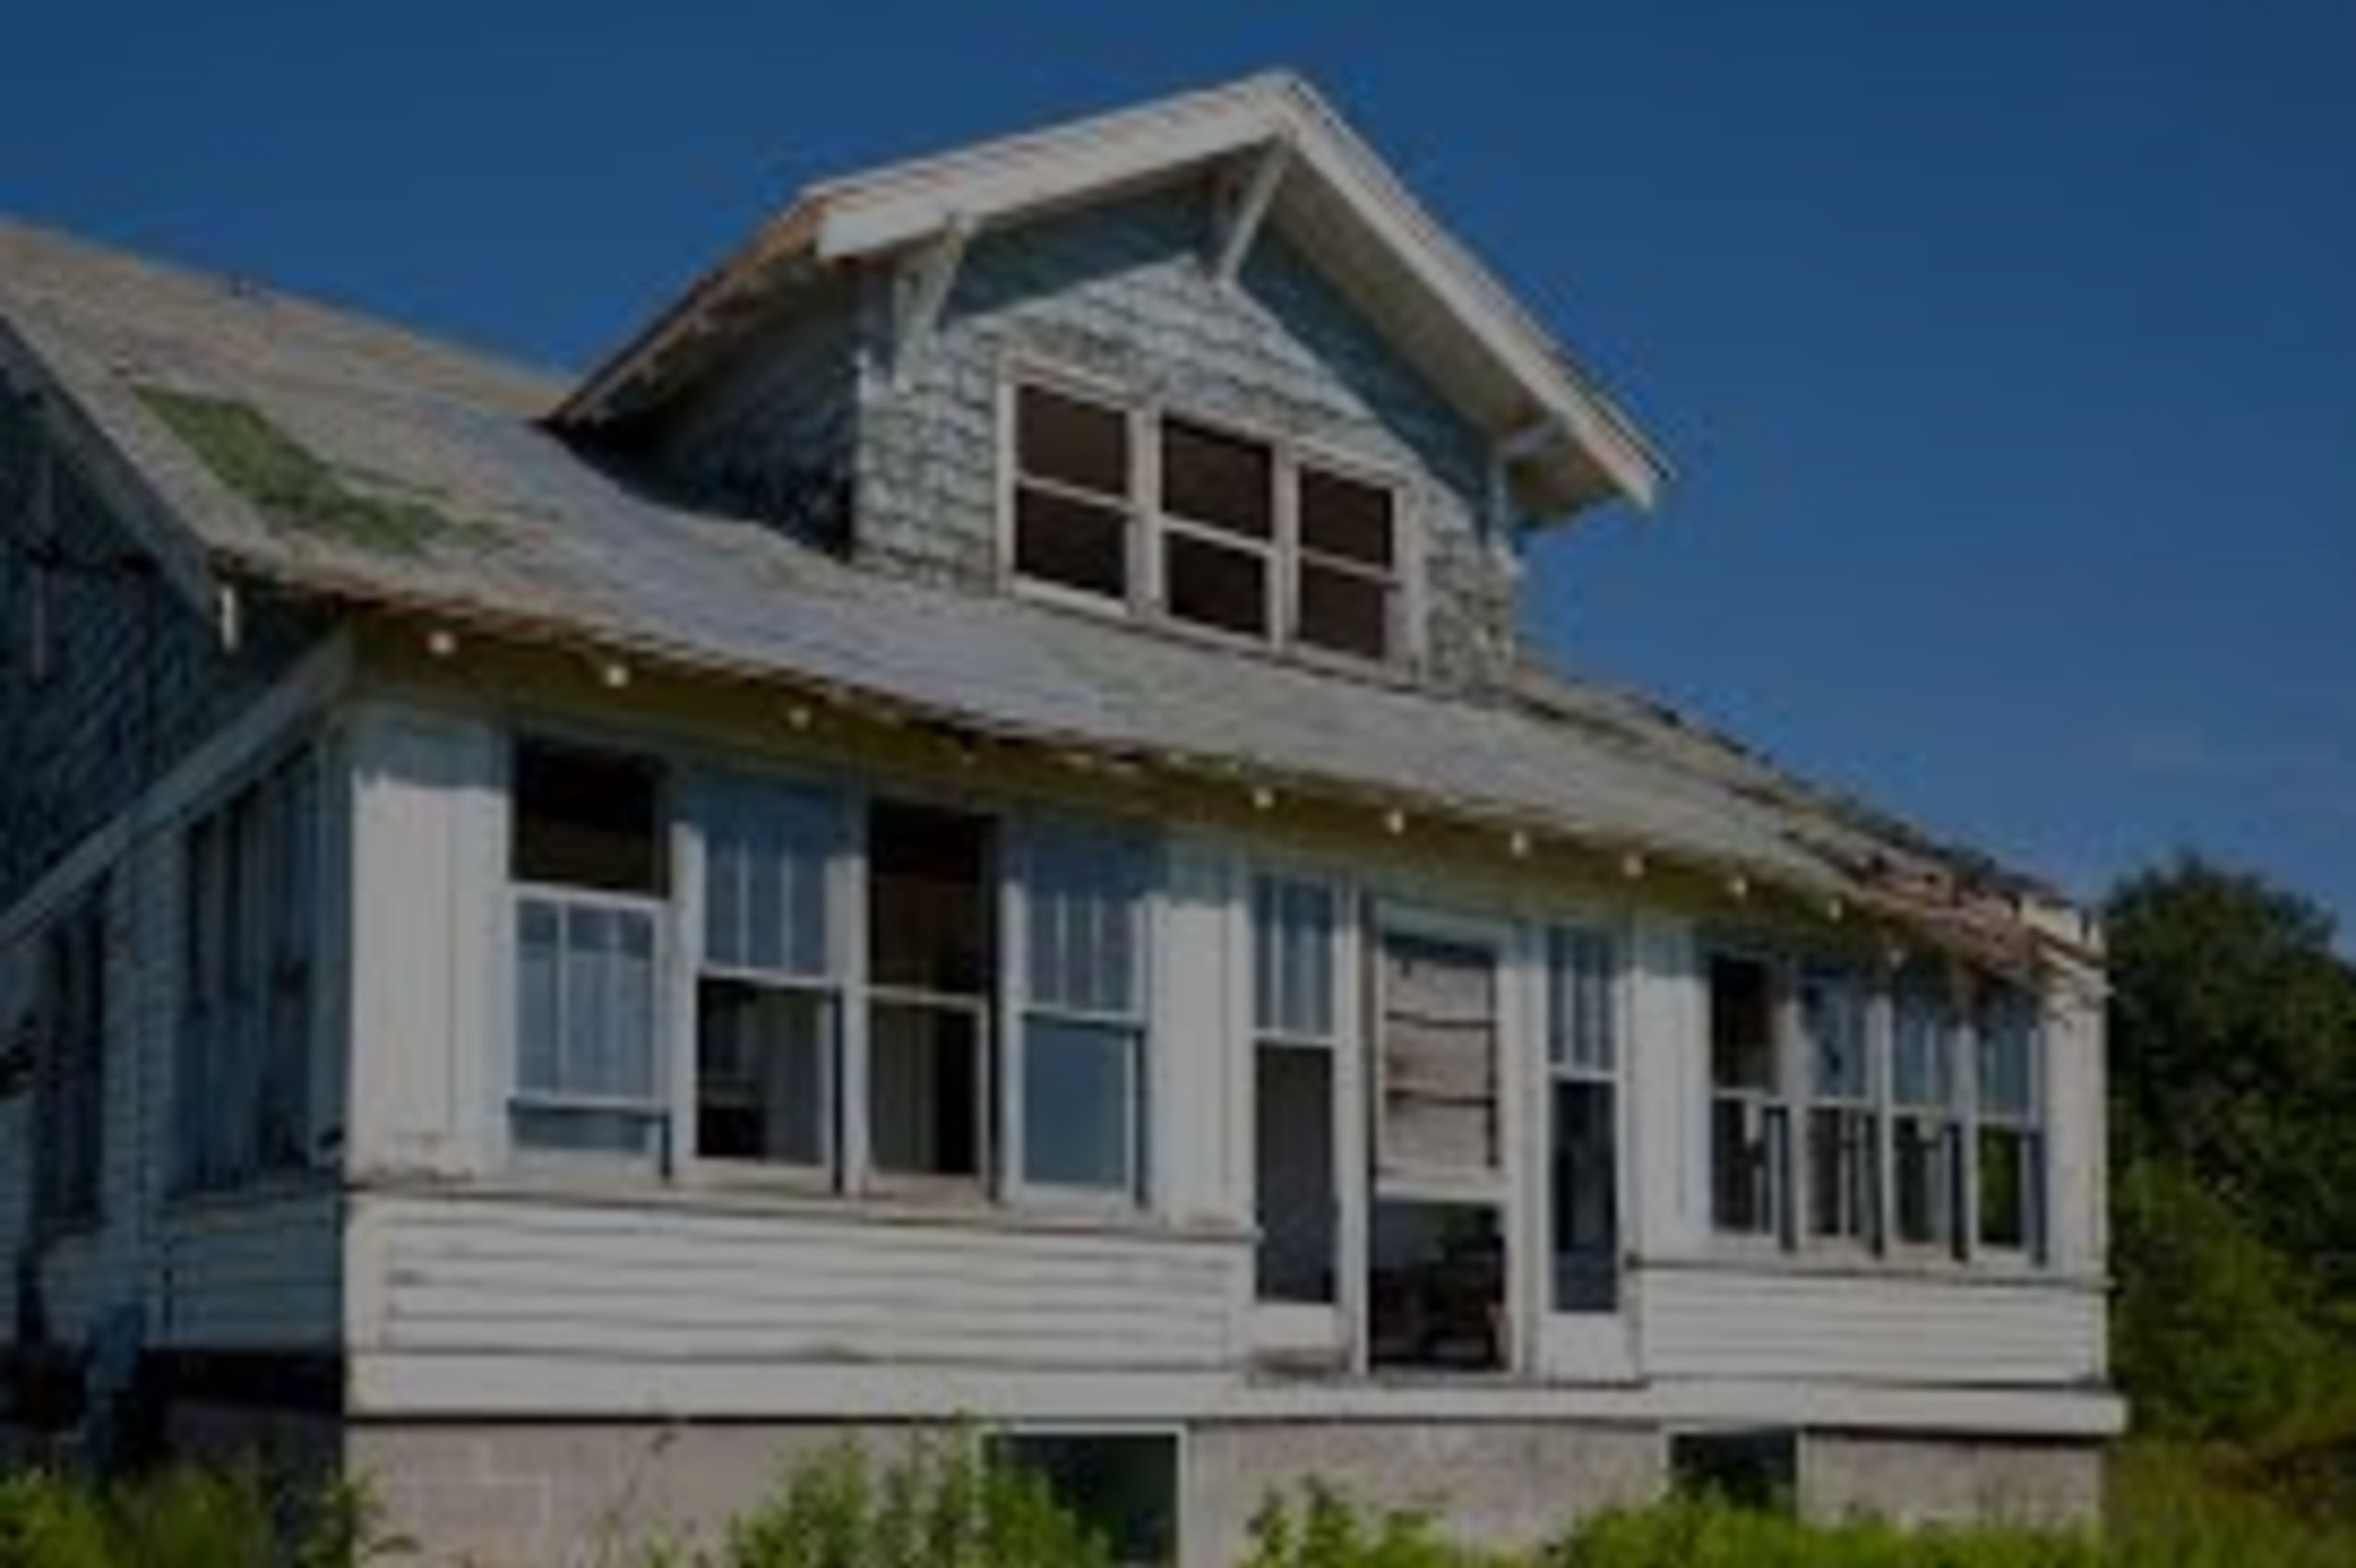 Fixer-upper or money pit? How to decide